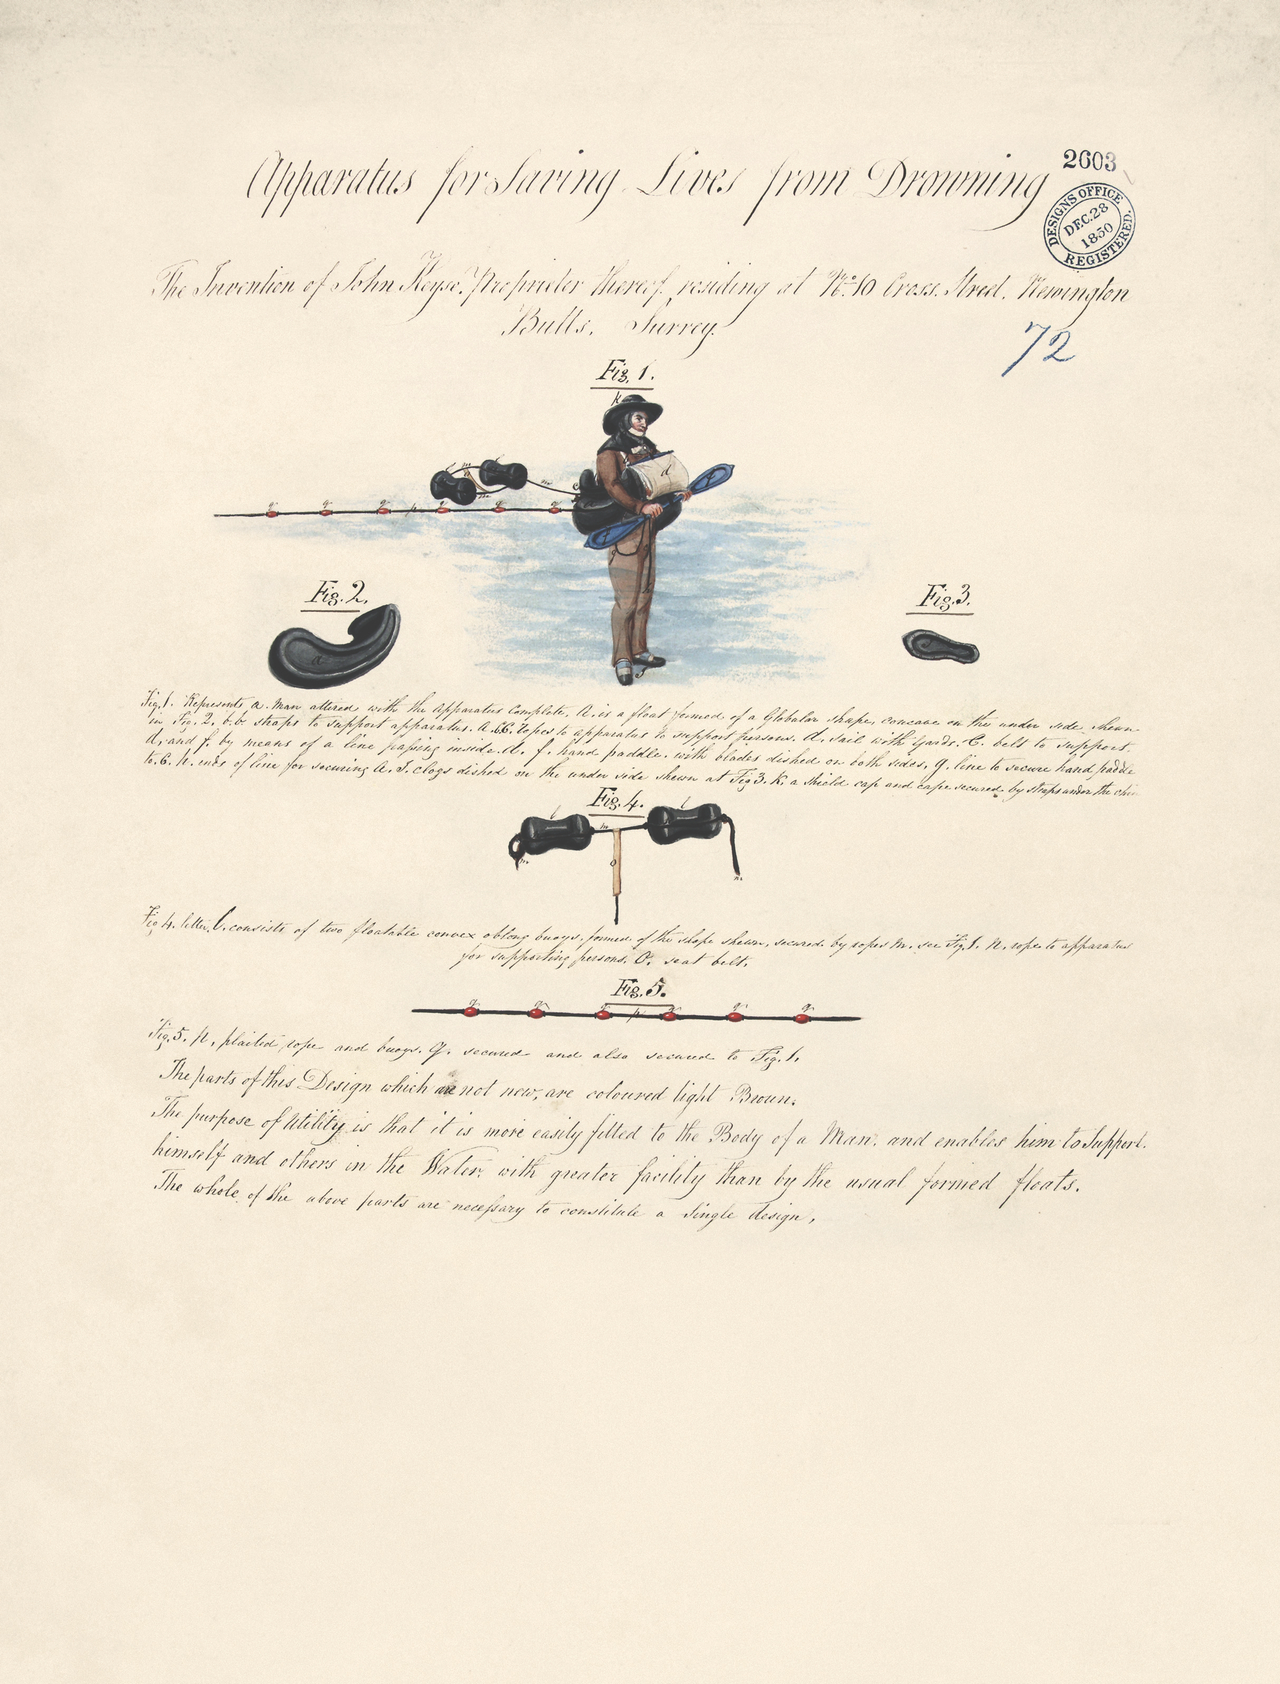 Apparatus for Saving Lives from Drowning by John Keyse, 1850 (BT 45/14) (The National Archives, London, England 2014. © 2014 Crown Copyright)